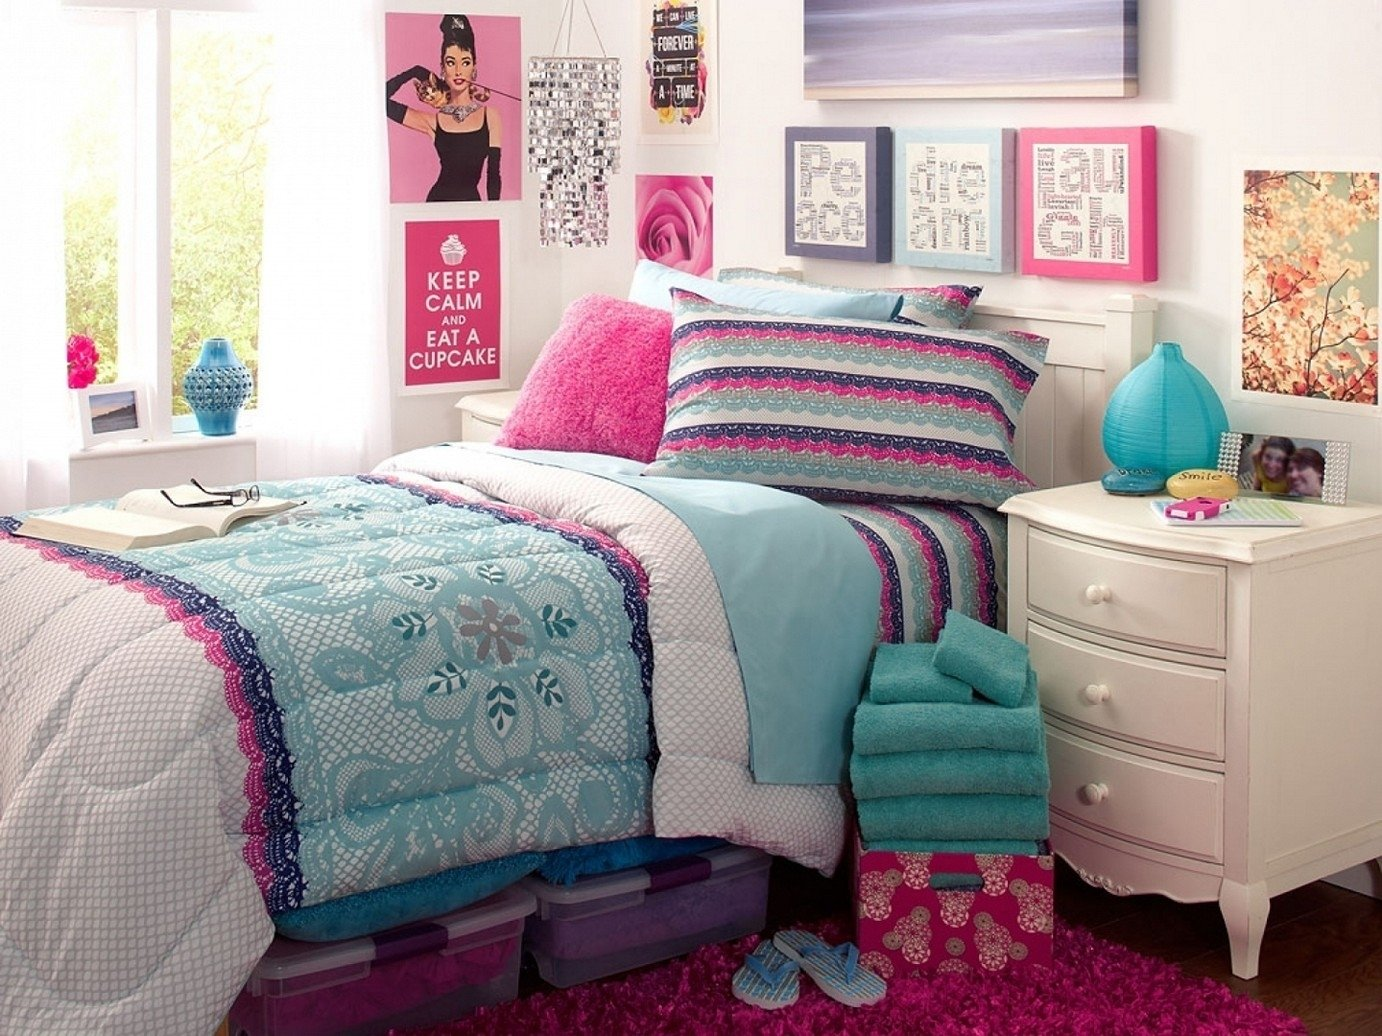 10 Elegant Cute Bedroom Ideas For Small Rooms best cute bedroom ideas for small rooms womenmisbehavin